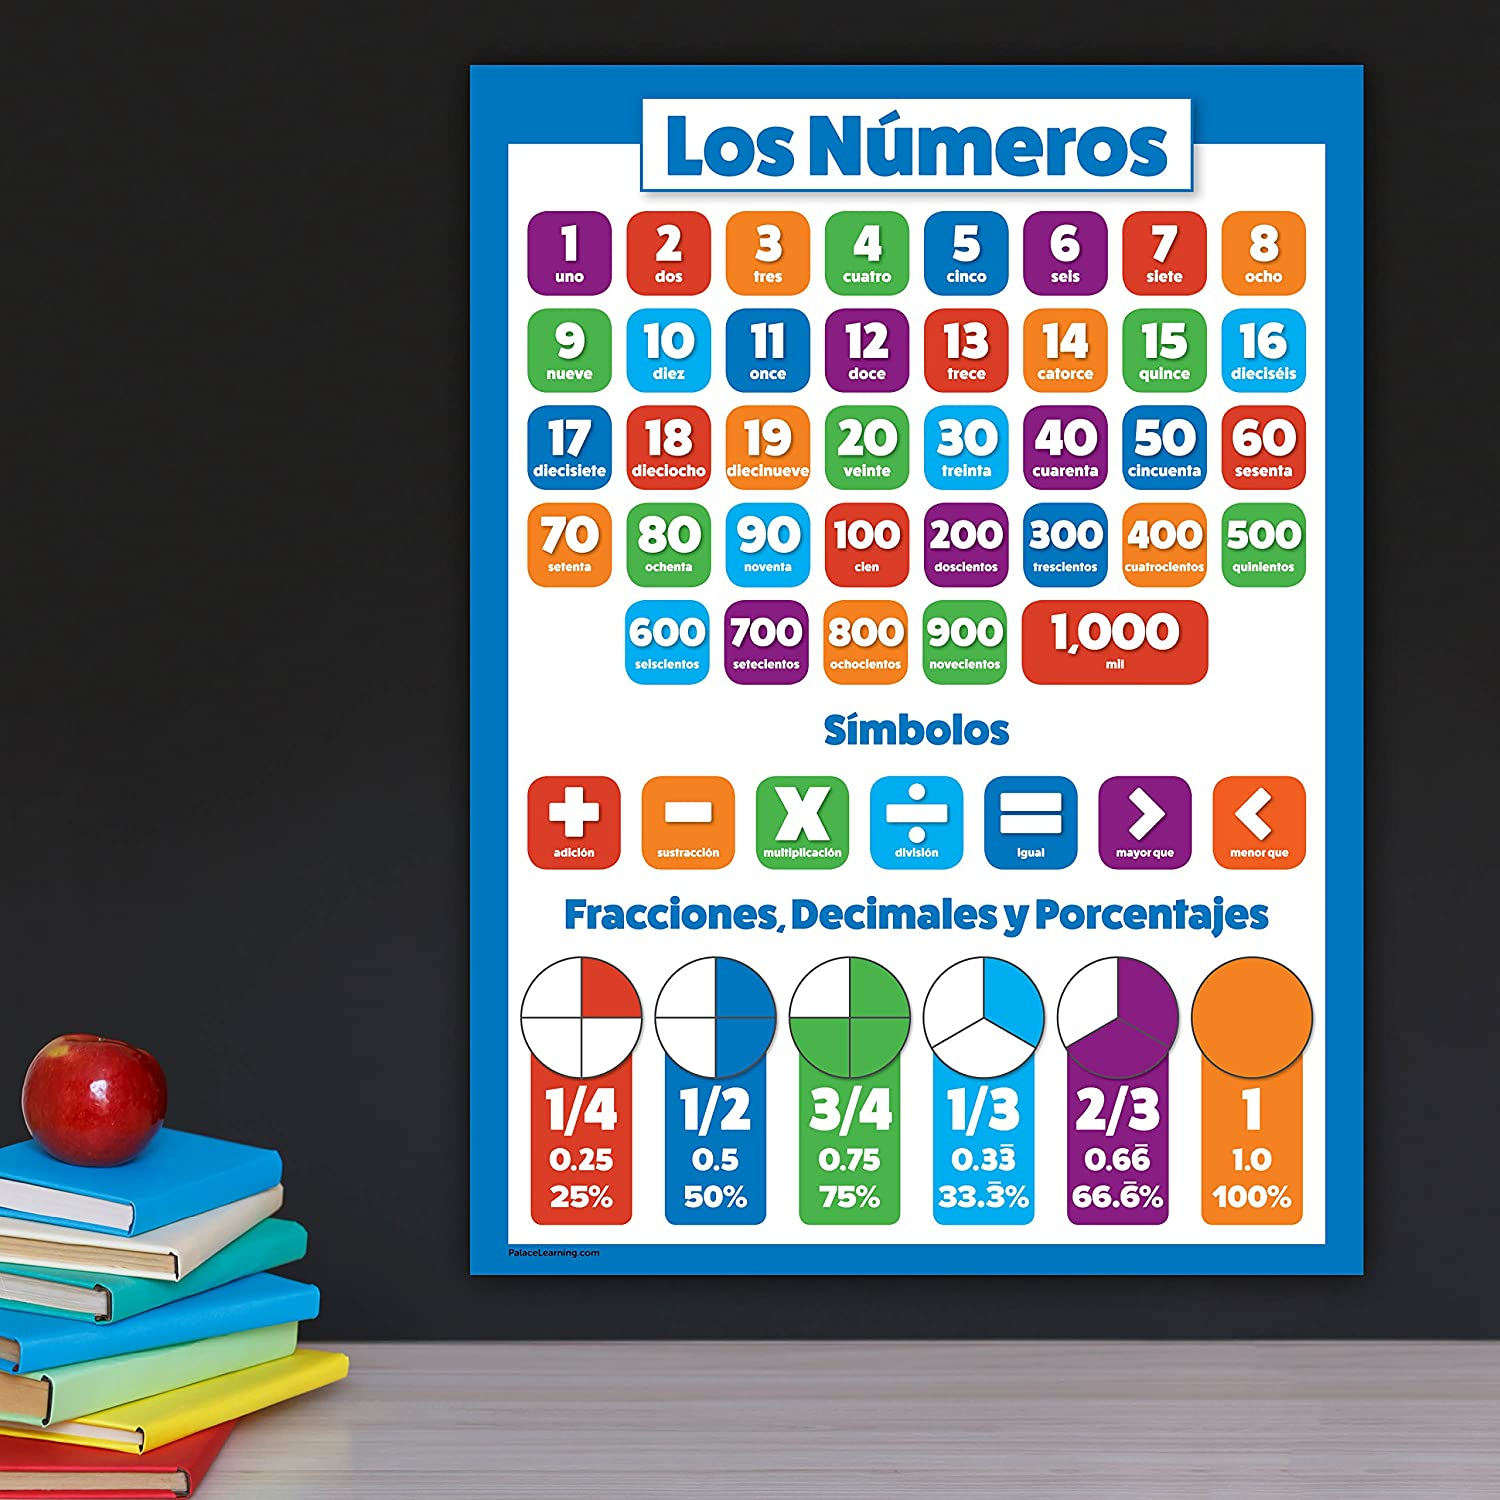 ABC Shapes Days of The Week Numbers 1-10 Espa/ñol Alfabeto Alphabet 10 Laminated Spanish Educational Posters for Toddlers Colors Months of The Year Numbers 1-100 Abecedario